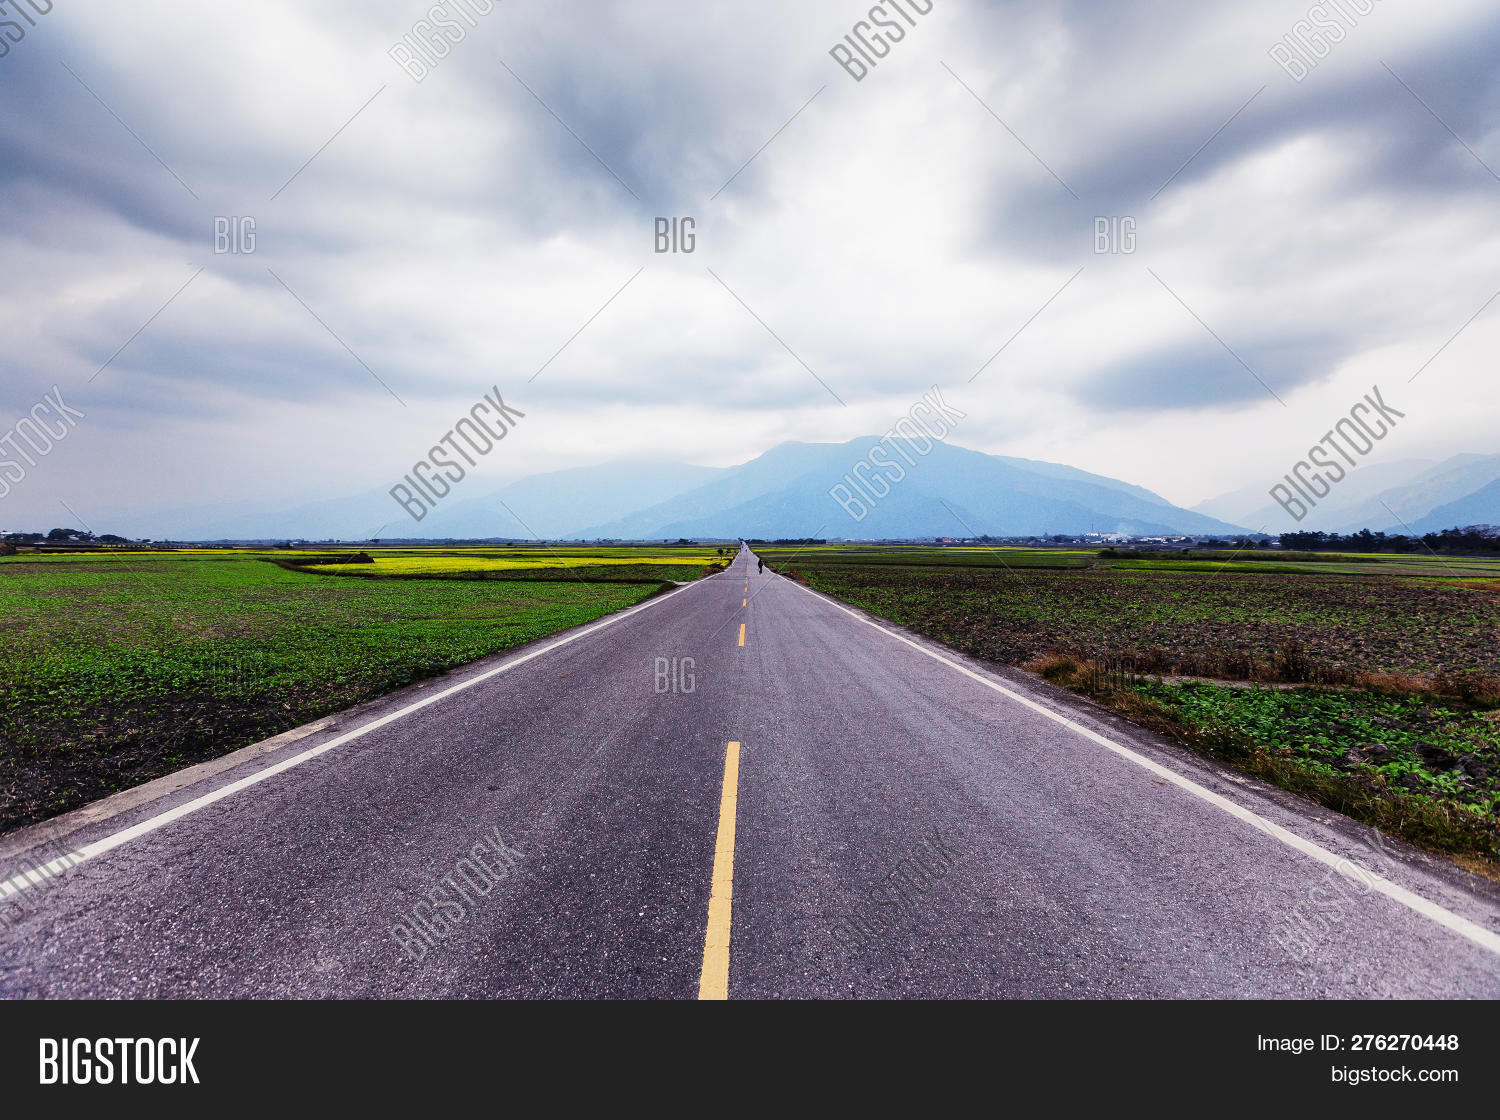 ahead,asphalt,background,center,cloud,country,course,day,direct,direction,drive,empty,field,footpath,forward,freedom,future,going,grass,green,highway,horizon,journey,landscape,line,linear,long,middle,mountain,moving,nature,nobody,open,path,pathway,perspective,road,route,rural,scenic,sky,straight,travel,trip,view,walk,walkway,way